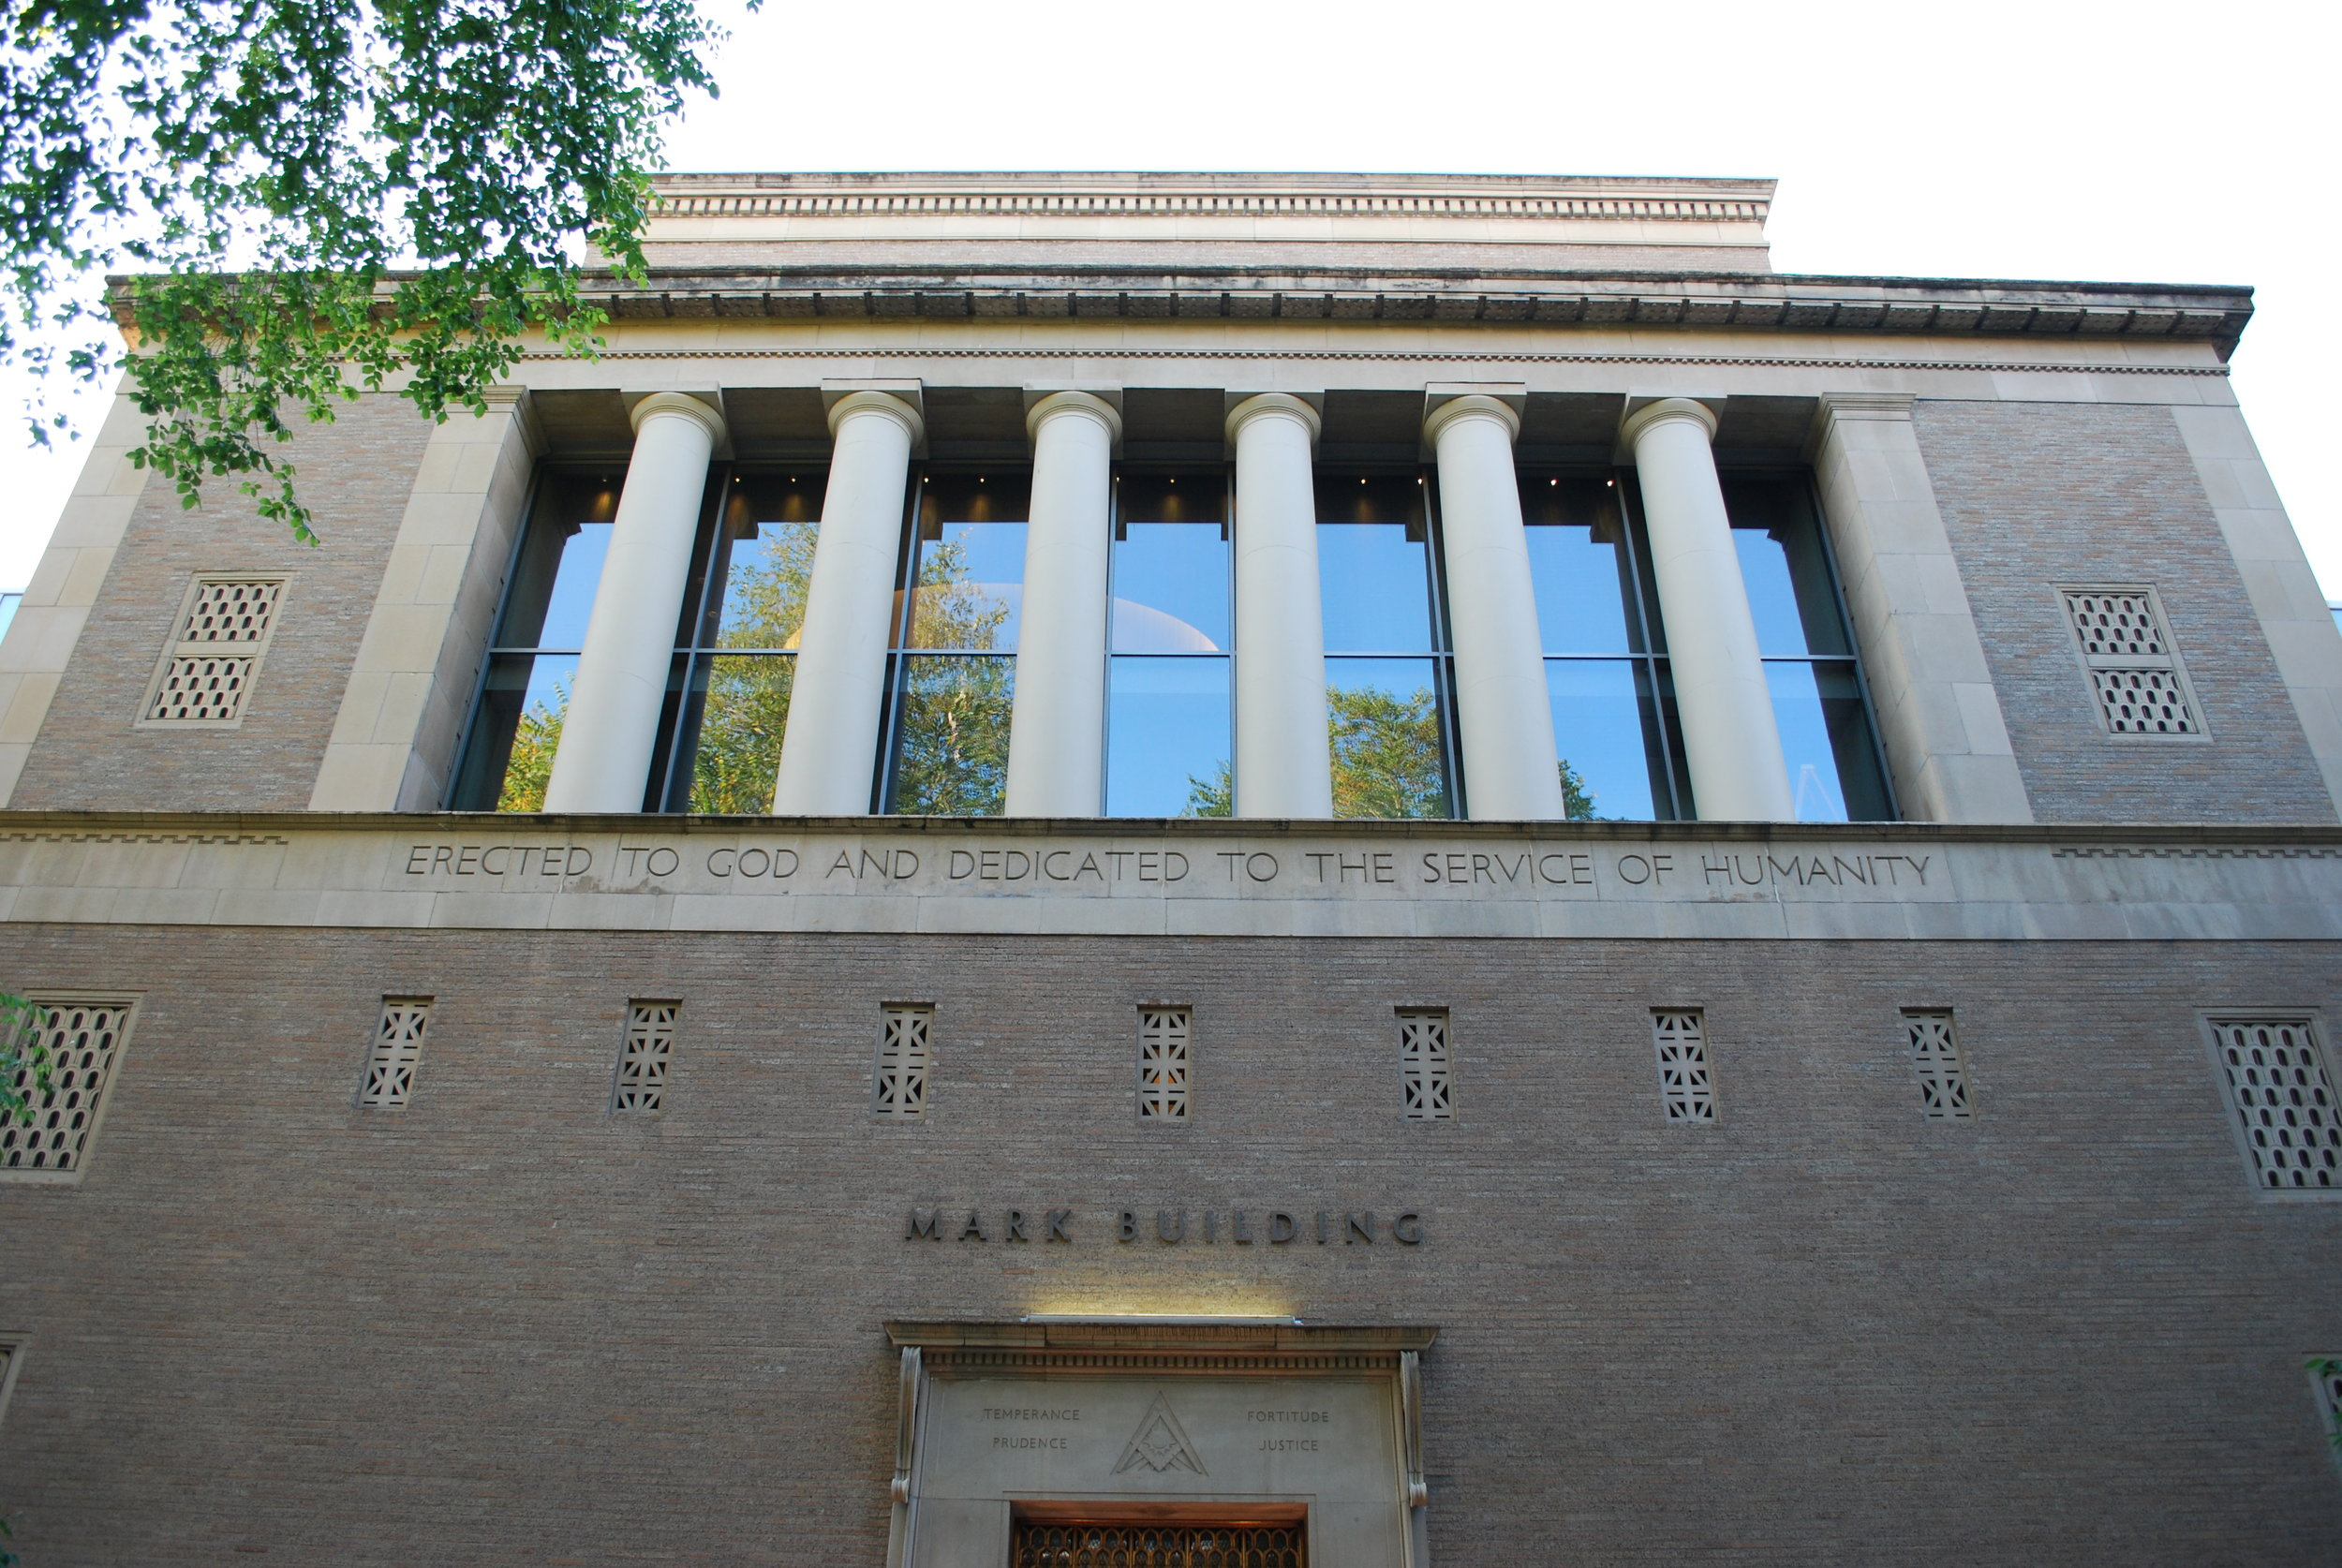 the mark building